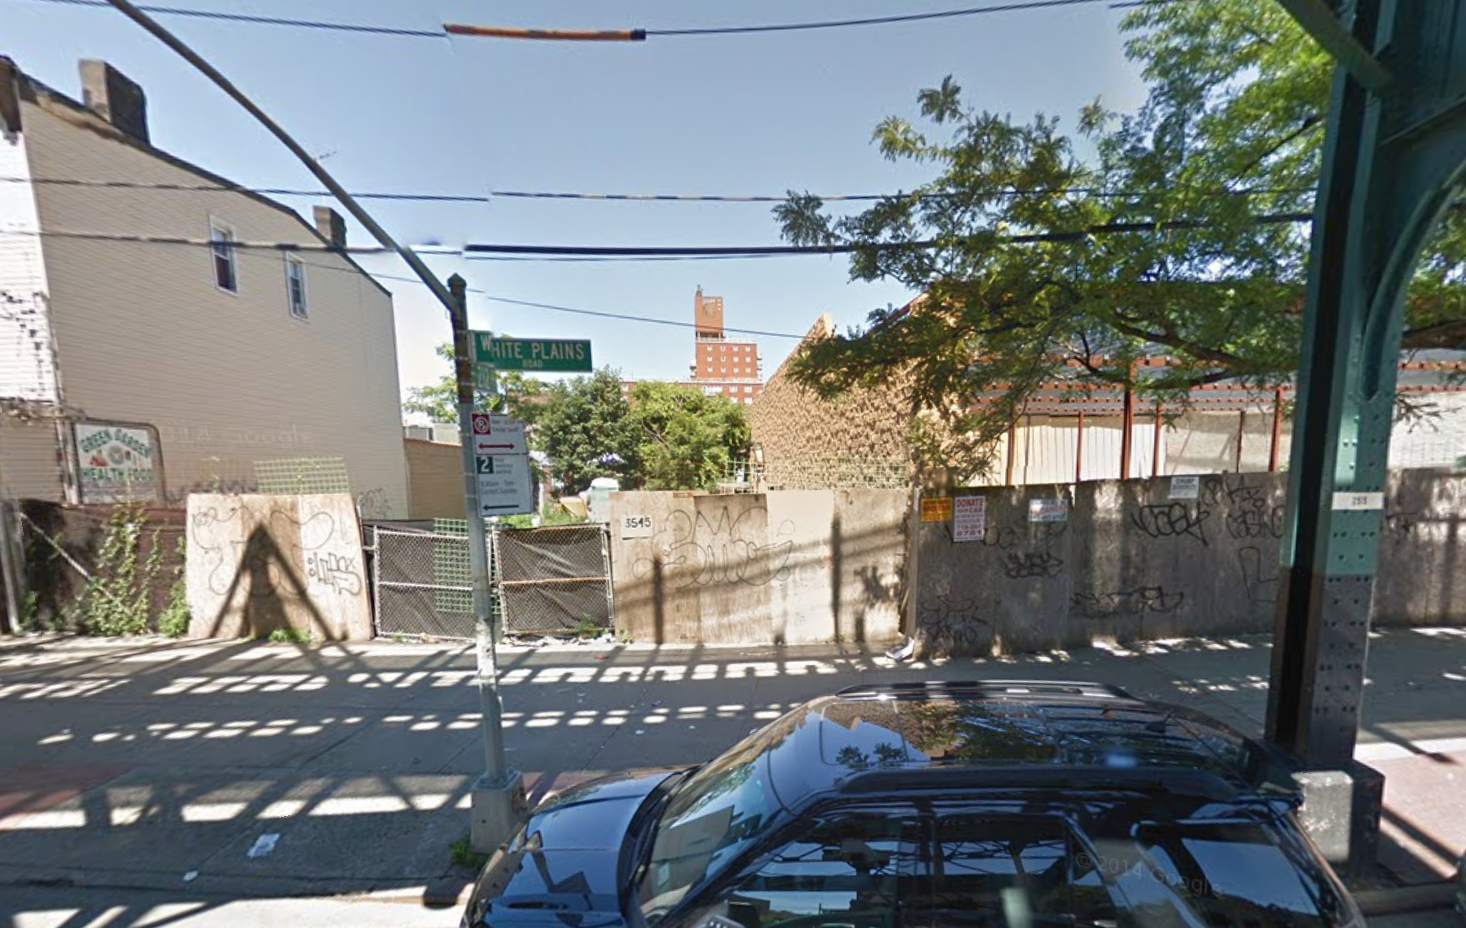 3545 White Plains Road, image via Google Maps